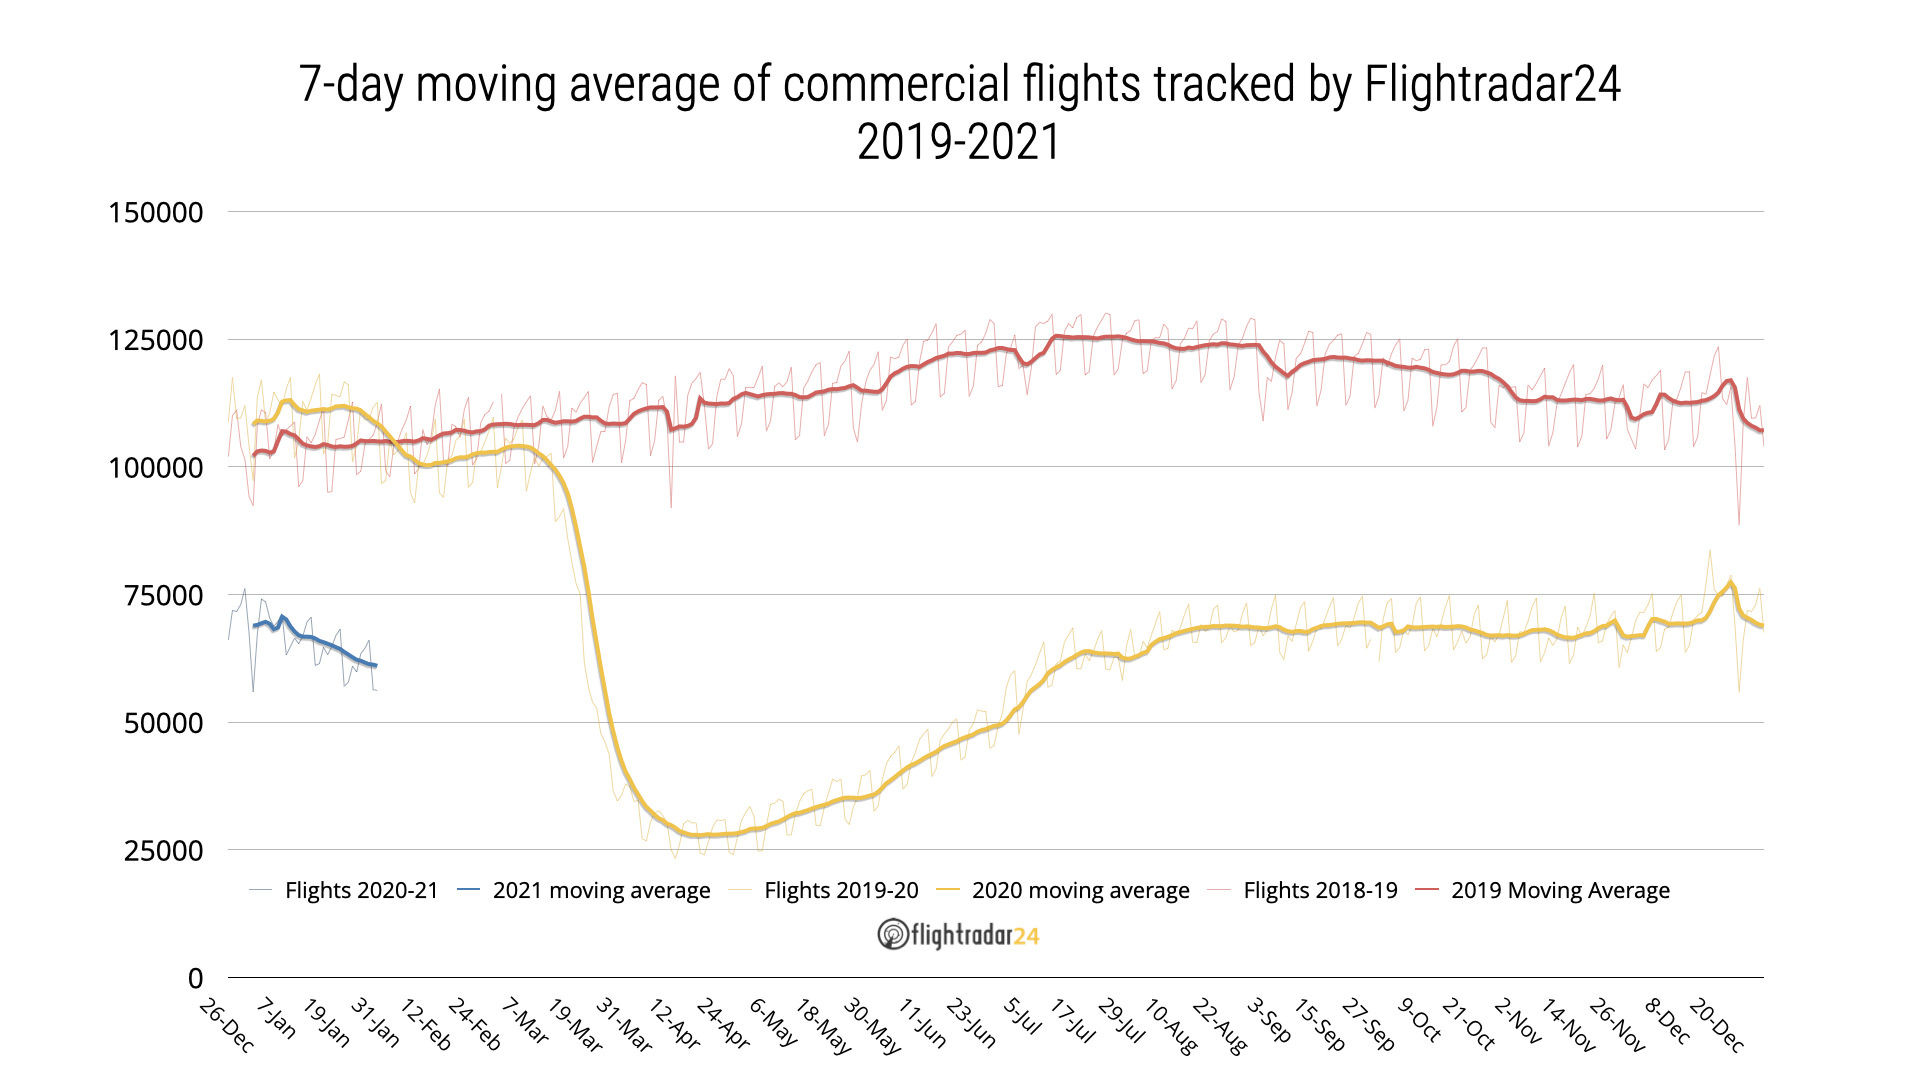 Chart showing commercial flights tracked by Flightradar24 from January 2019 to January 2021